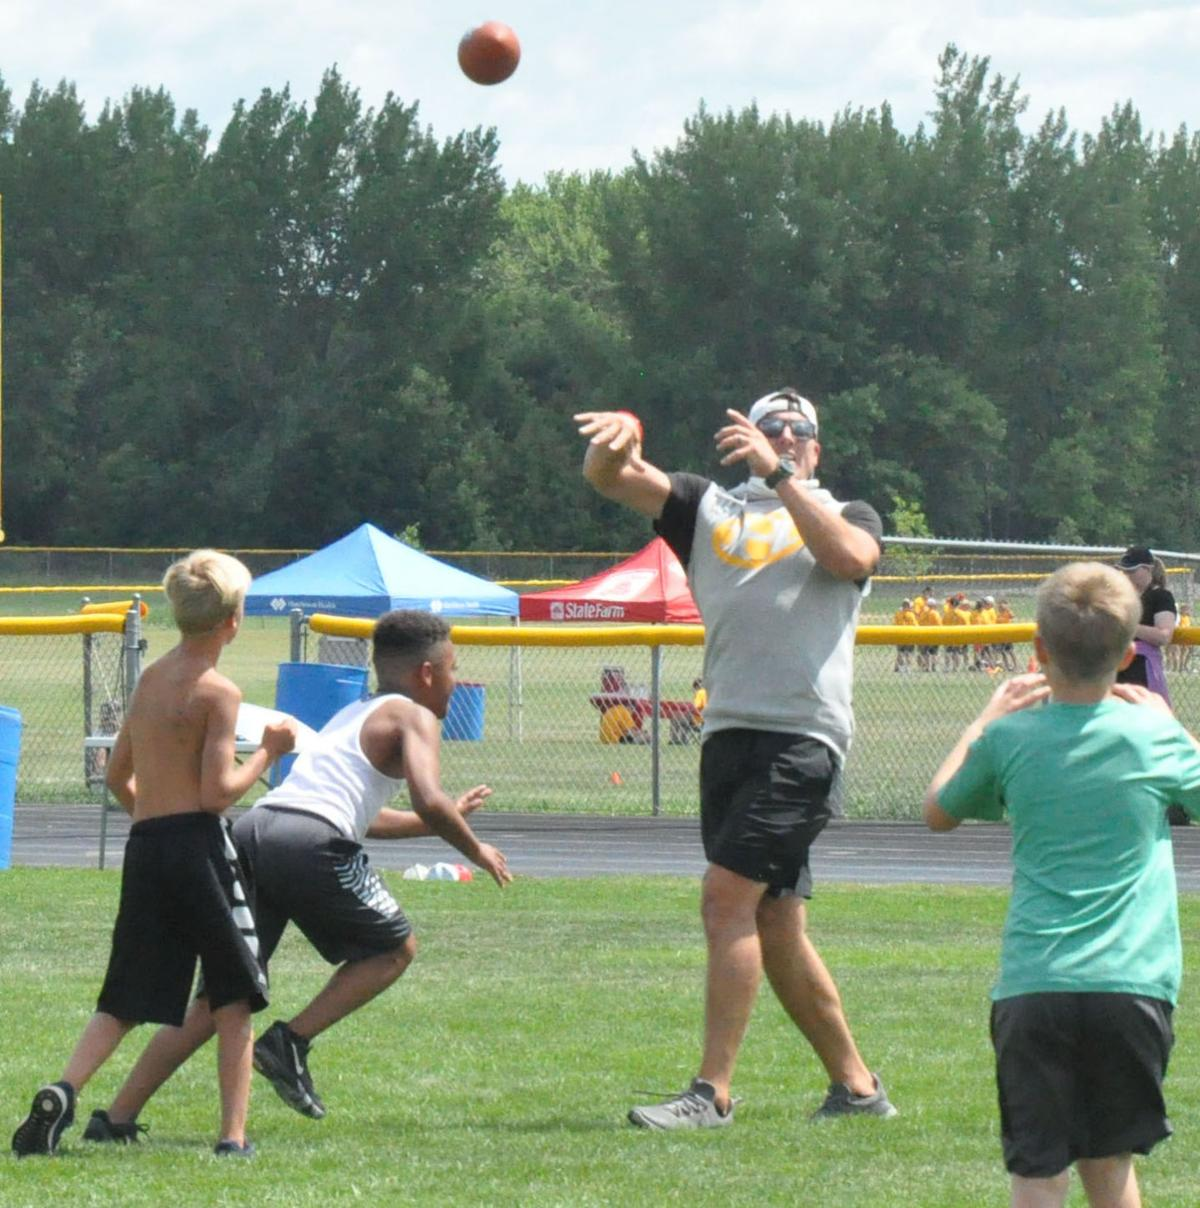 Greenway throws a pass